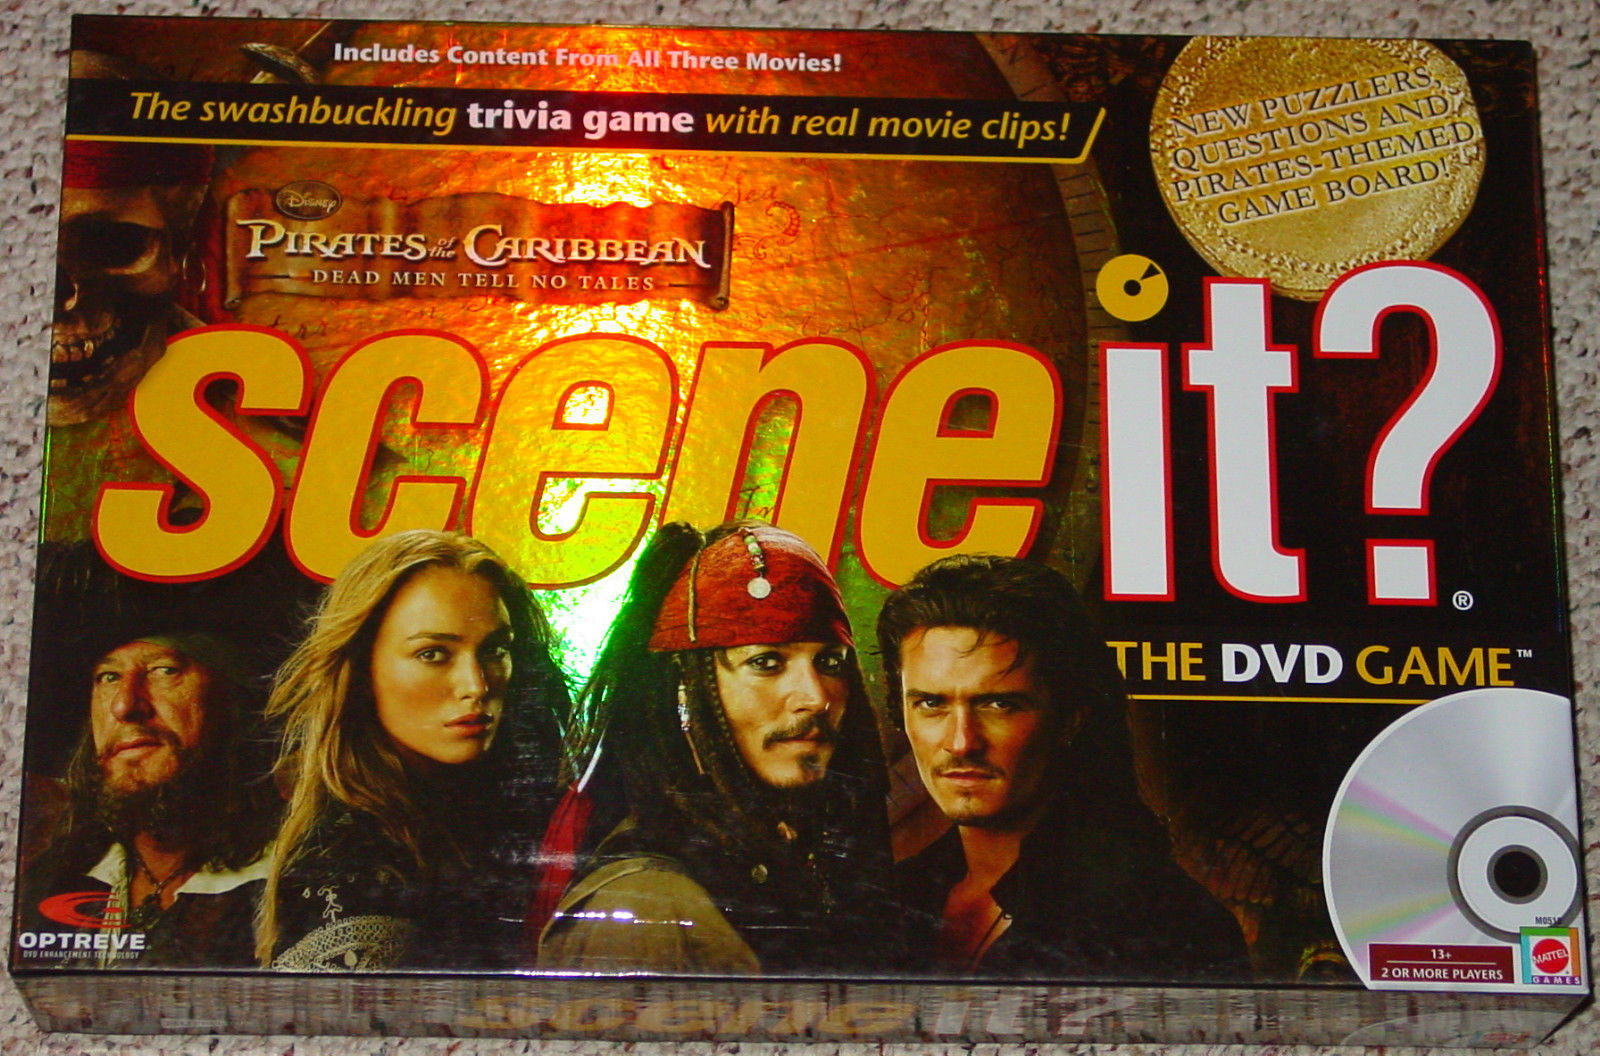 SCENE IT DVD GAME PIRATES OF THE CARIBBEAN DEAD MEN TELL NO 2007 sealed parts - $20.00